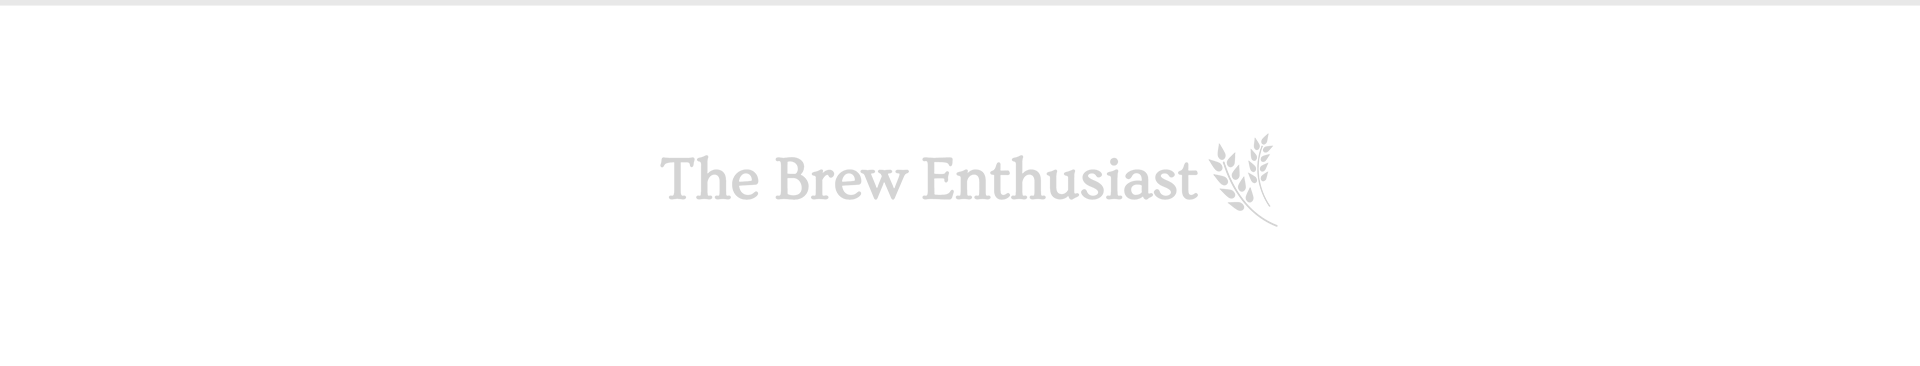 brewenthusiast-footer